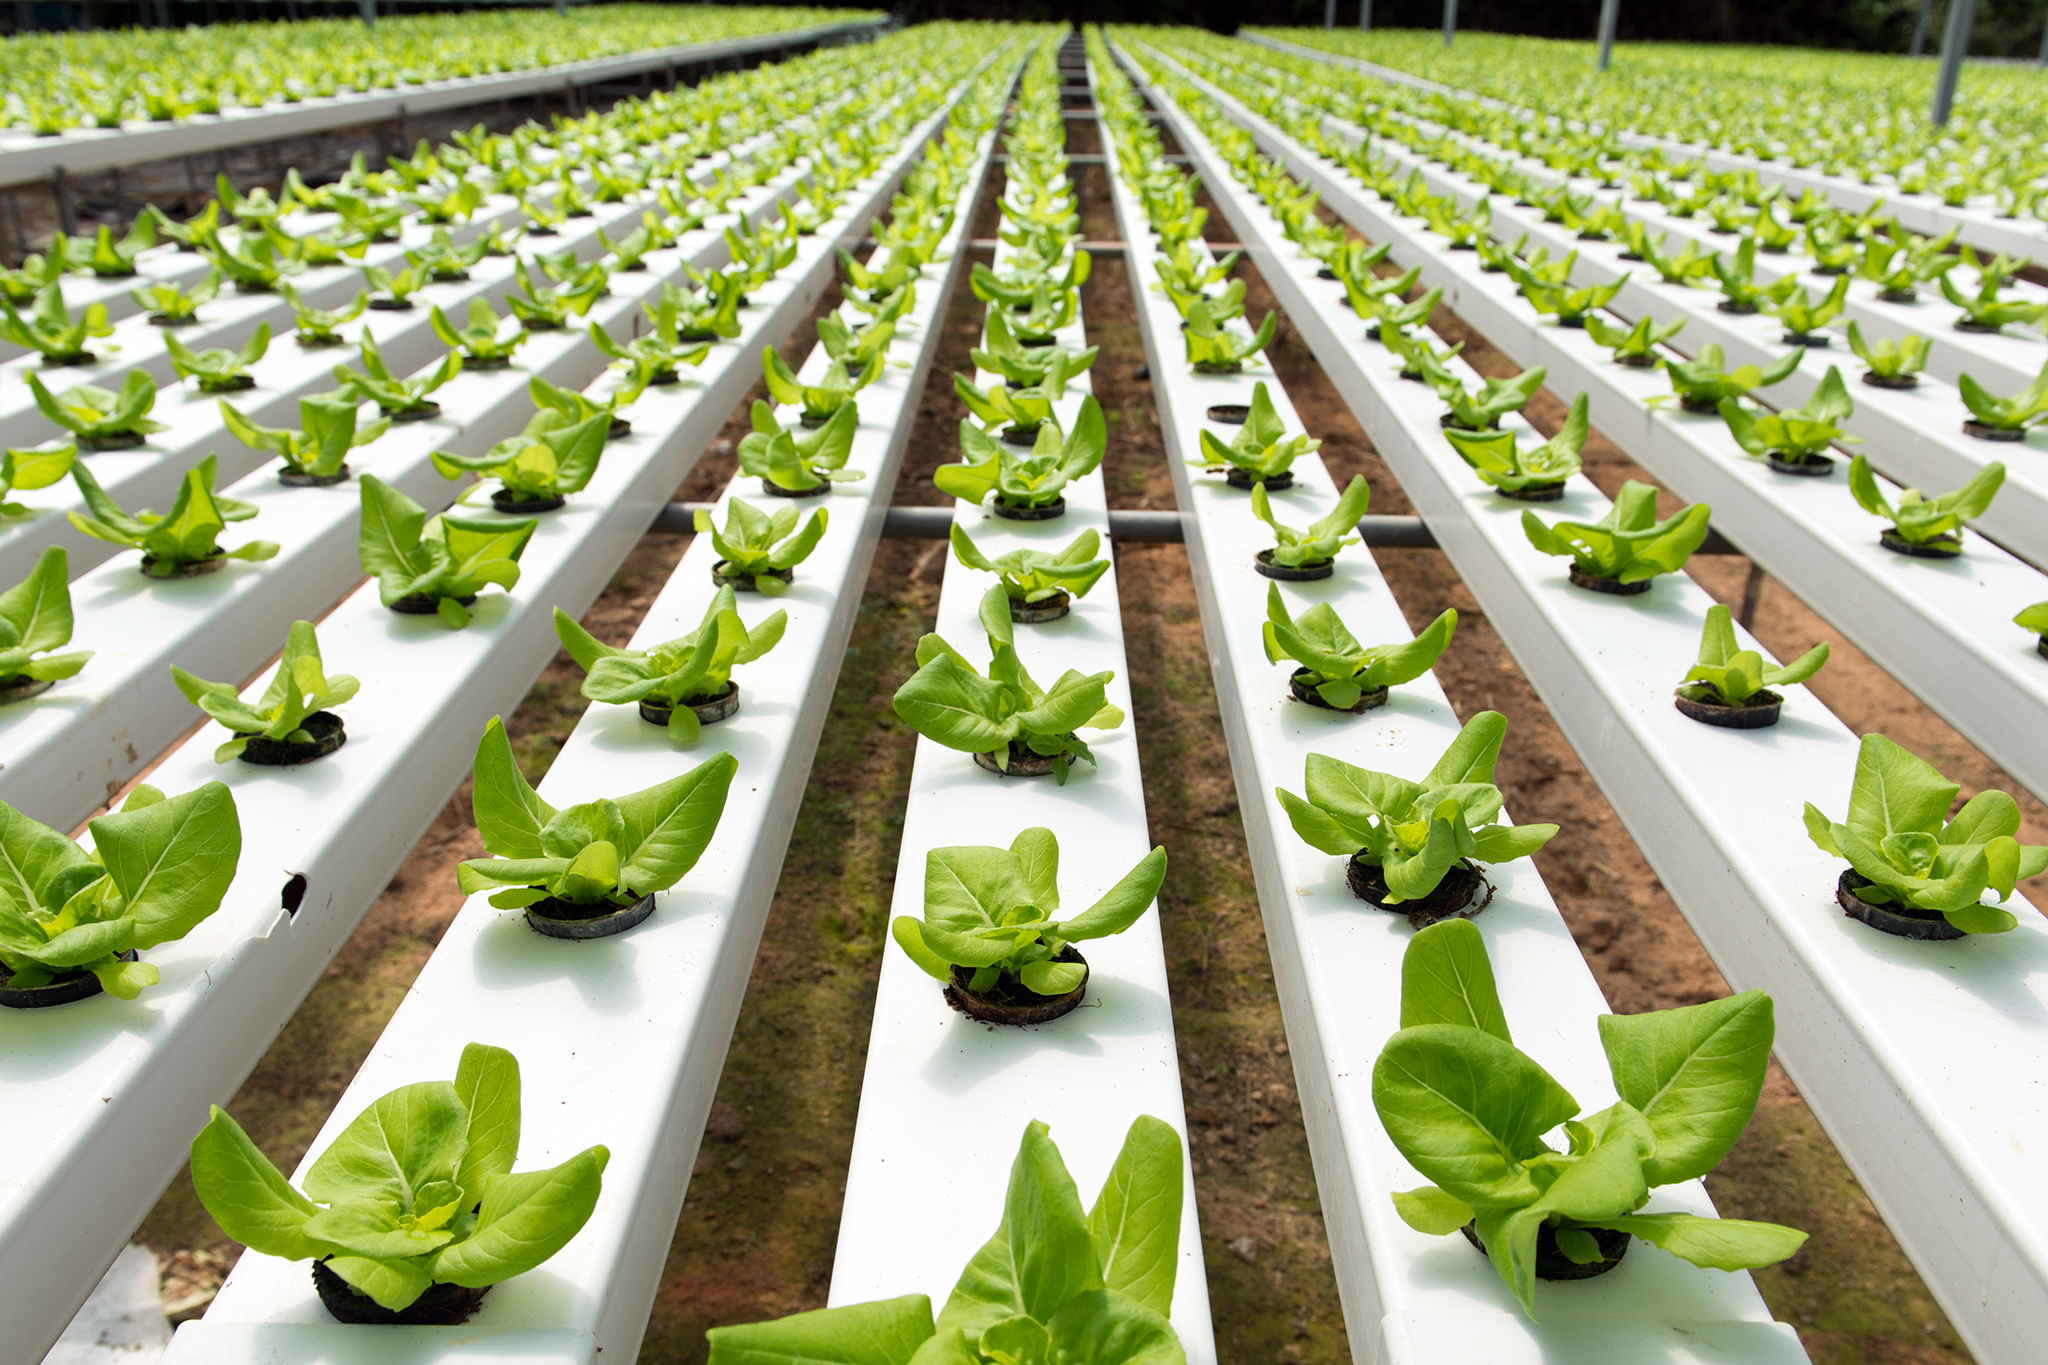 Tour a hydroponic farm in the Financial District